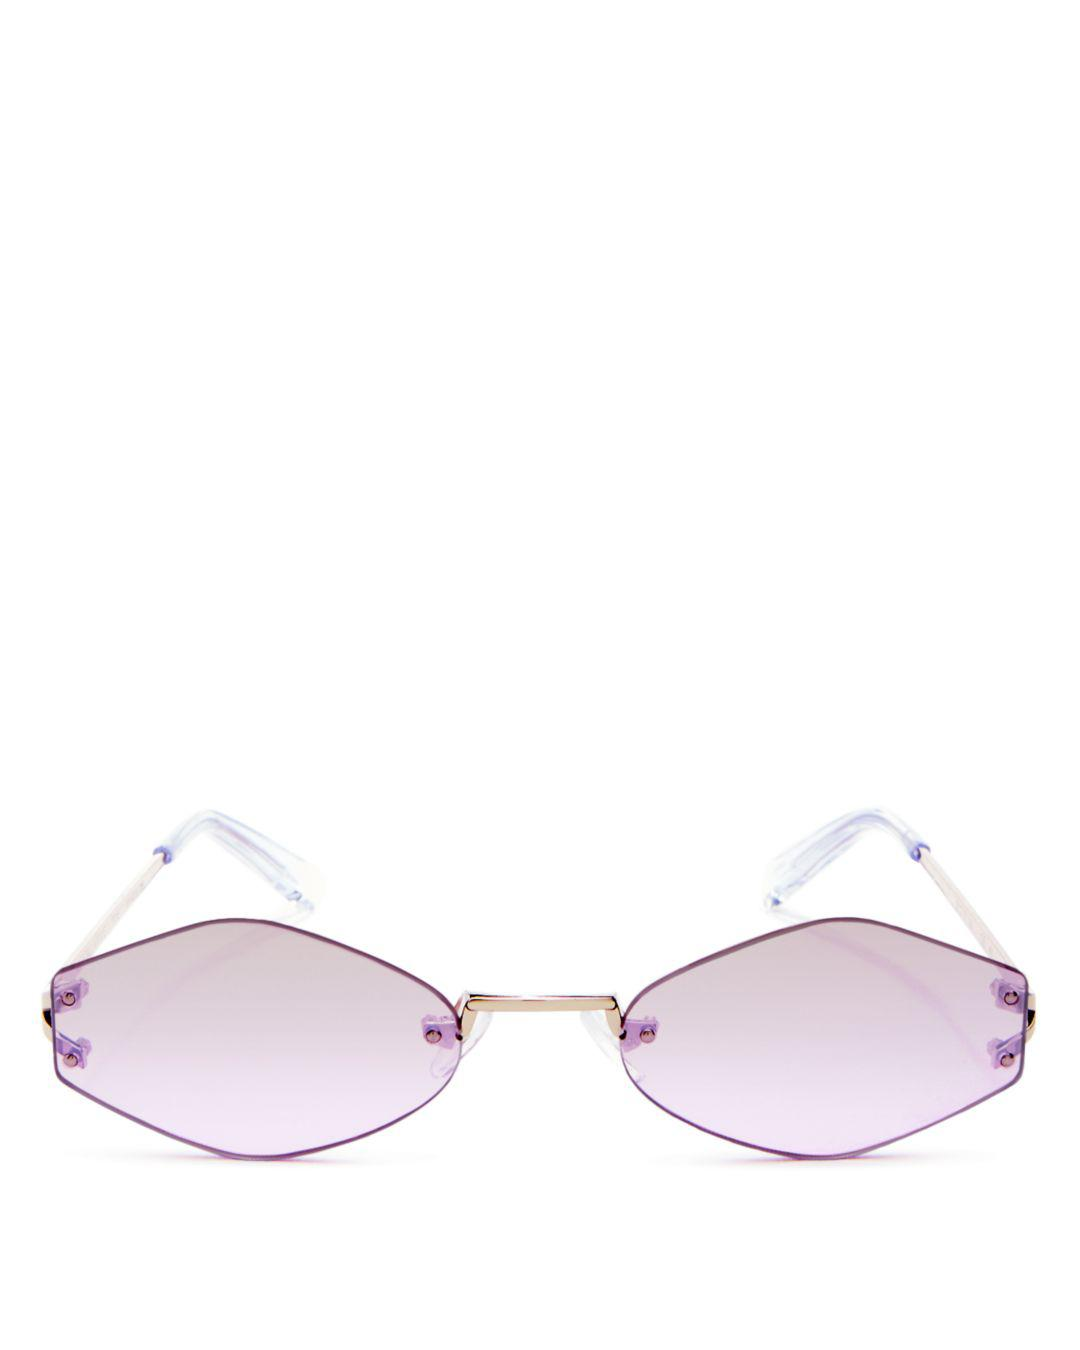 bc2d9ab113 Kendall + Kylie Kendall And Kylie Women s Kye Mirrored Round ...